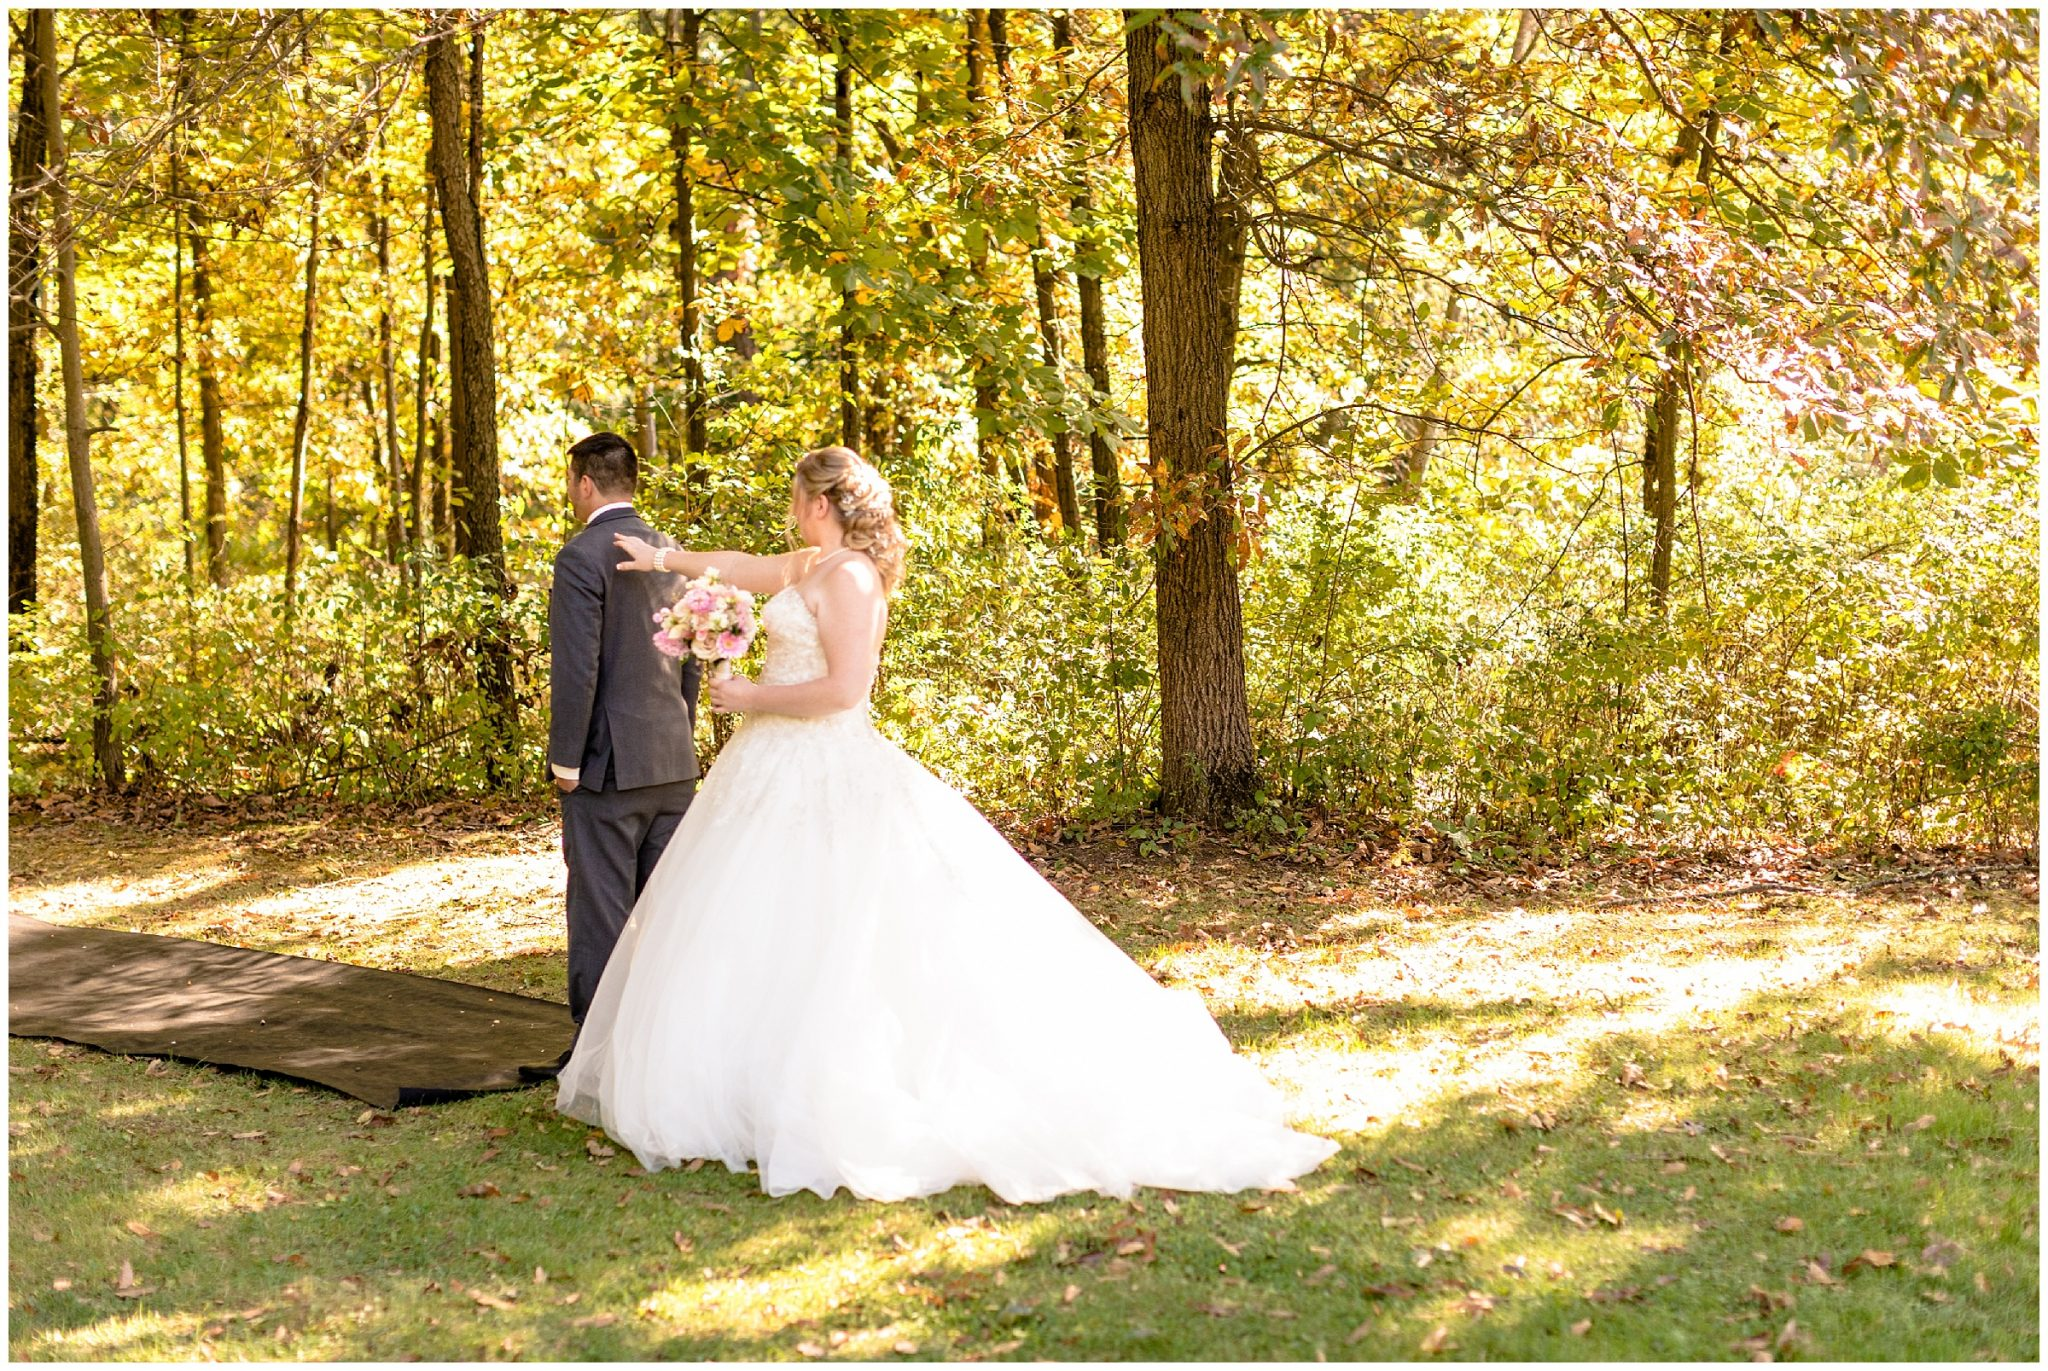 A Handmade Wedding in the Woods, Crown Point Indiana_0290